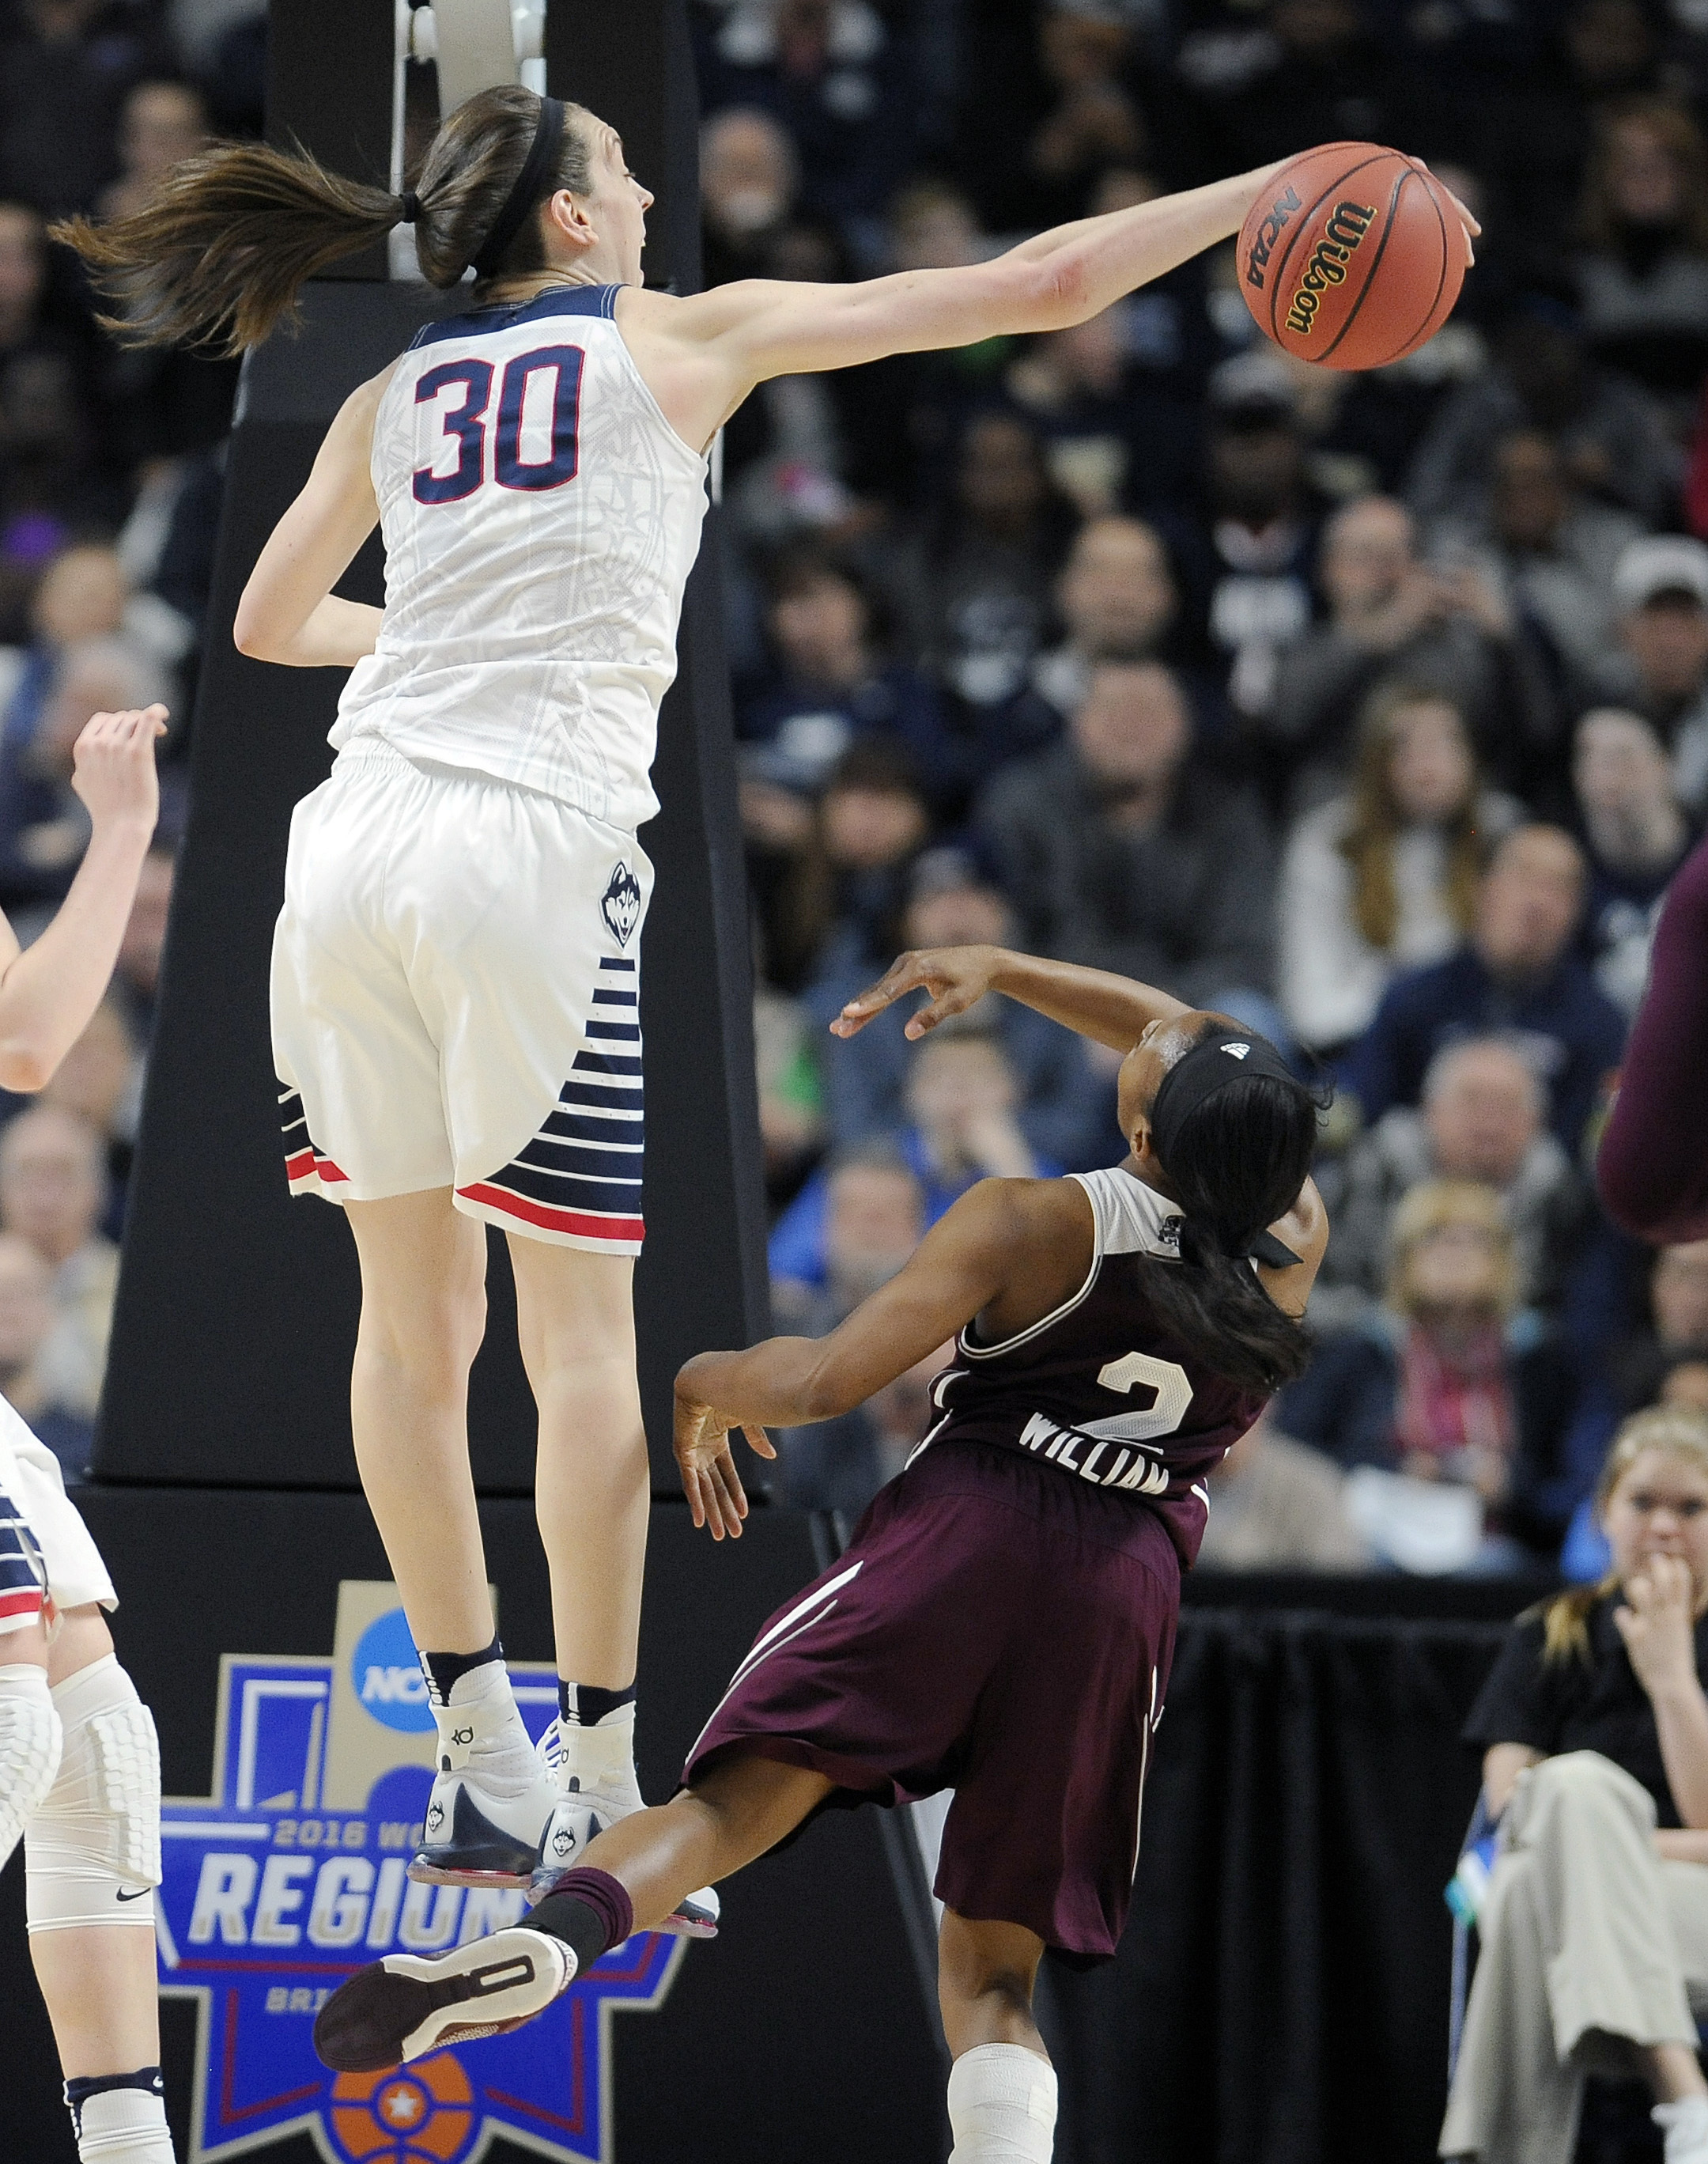 Connecticut's Breanna Stewart, left, blocks a shot by Mississippi State's Morgan William during the first half of an NCAA college basketball game in the regional semifinals of the women's NCAA Tournament, Saturday, March 26, 2016, in Bridgeport, Conn. (AP